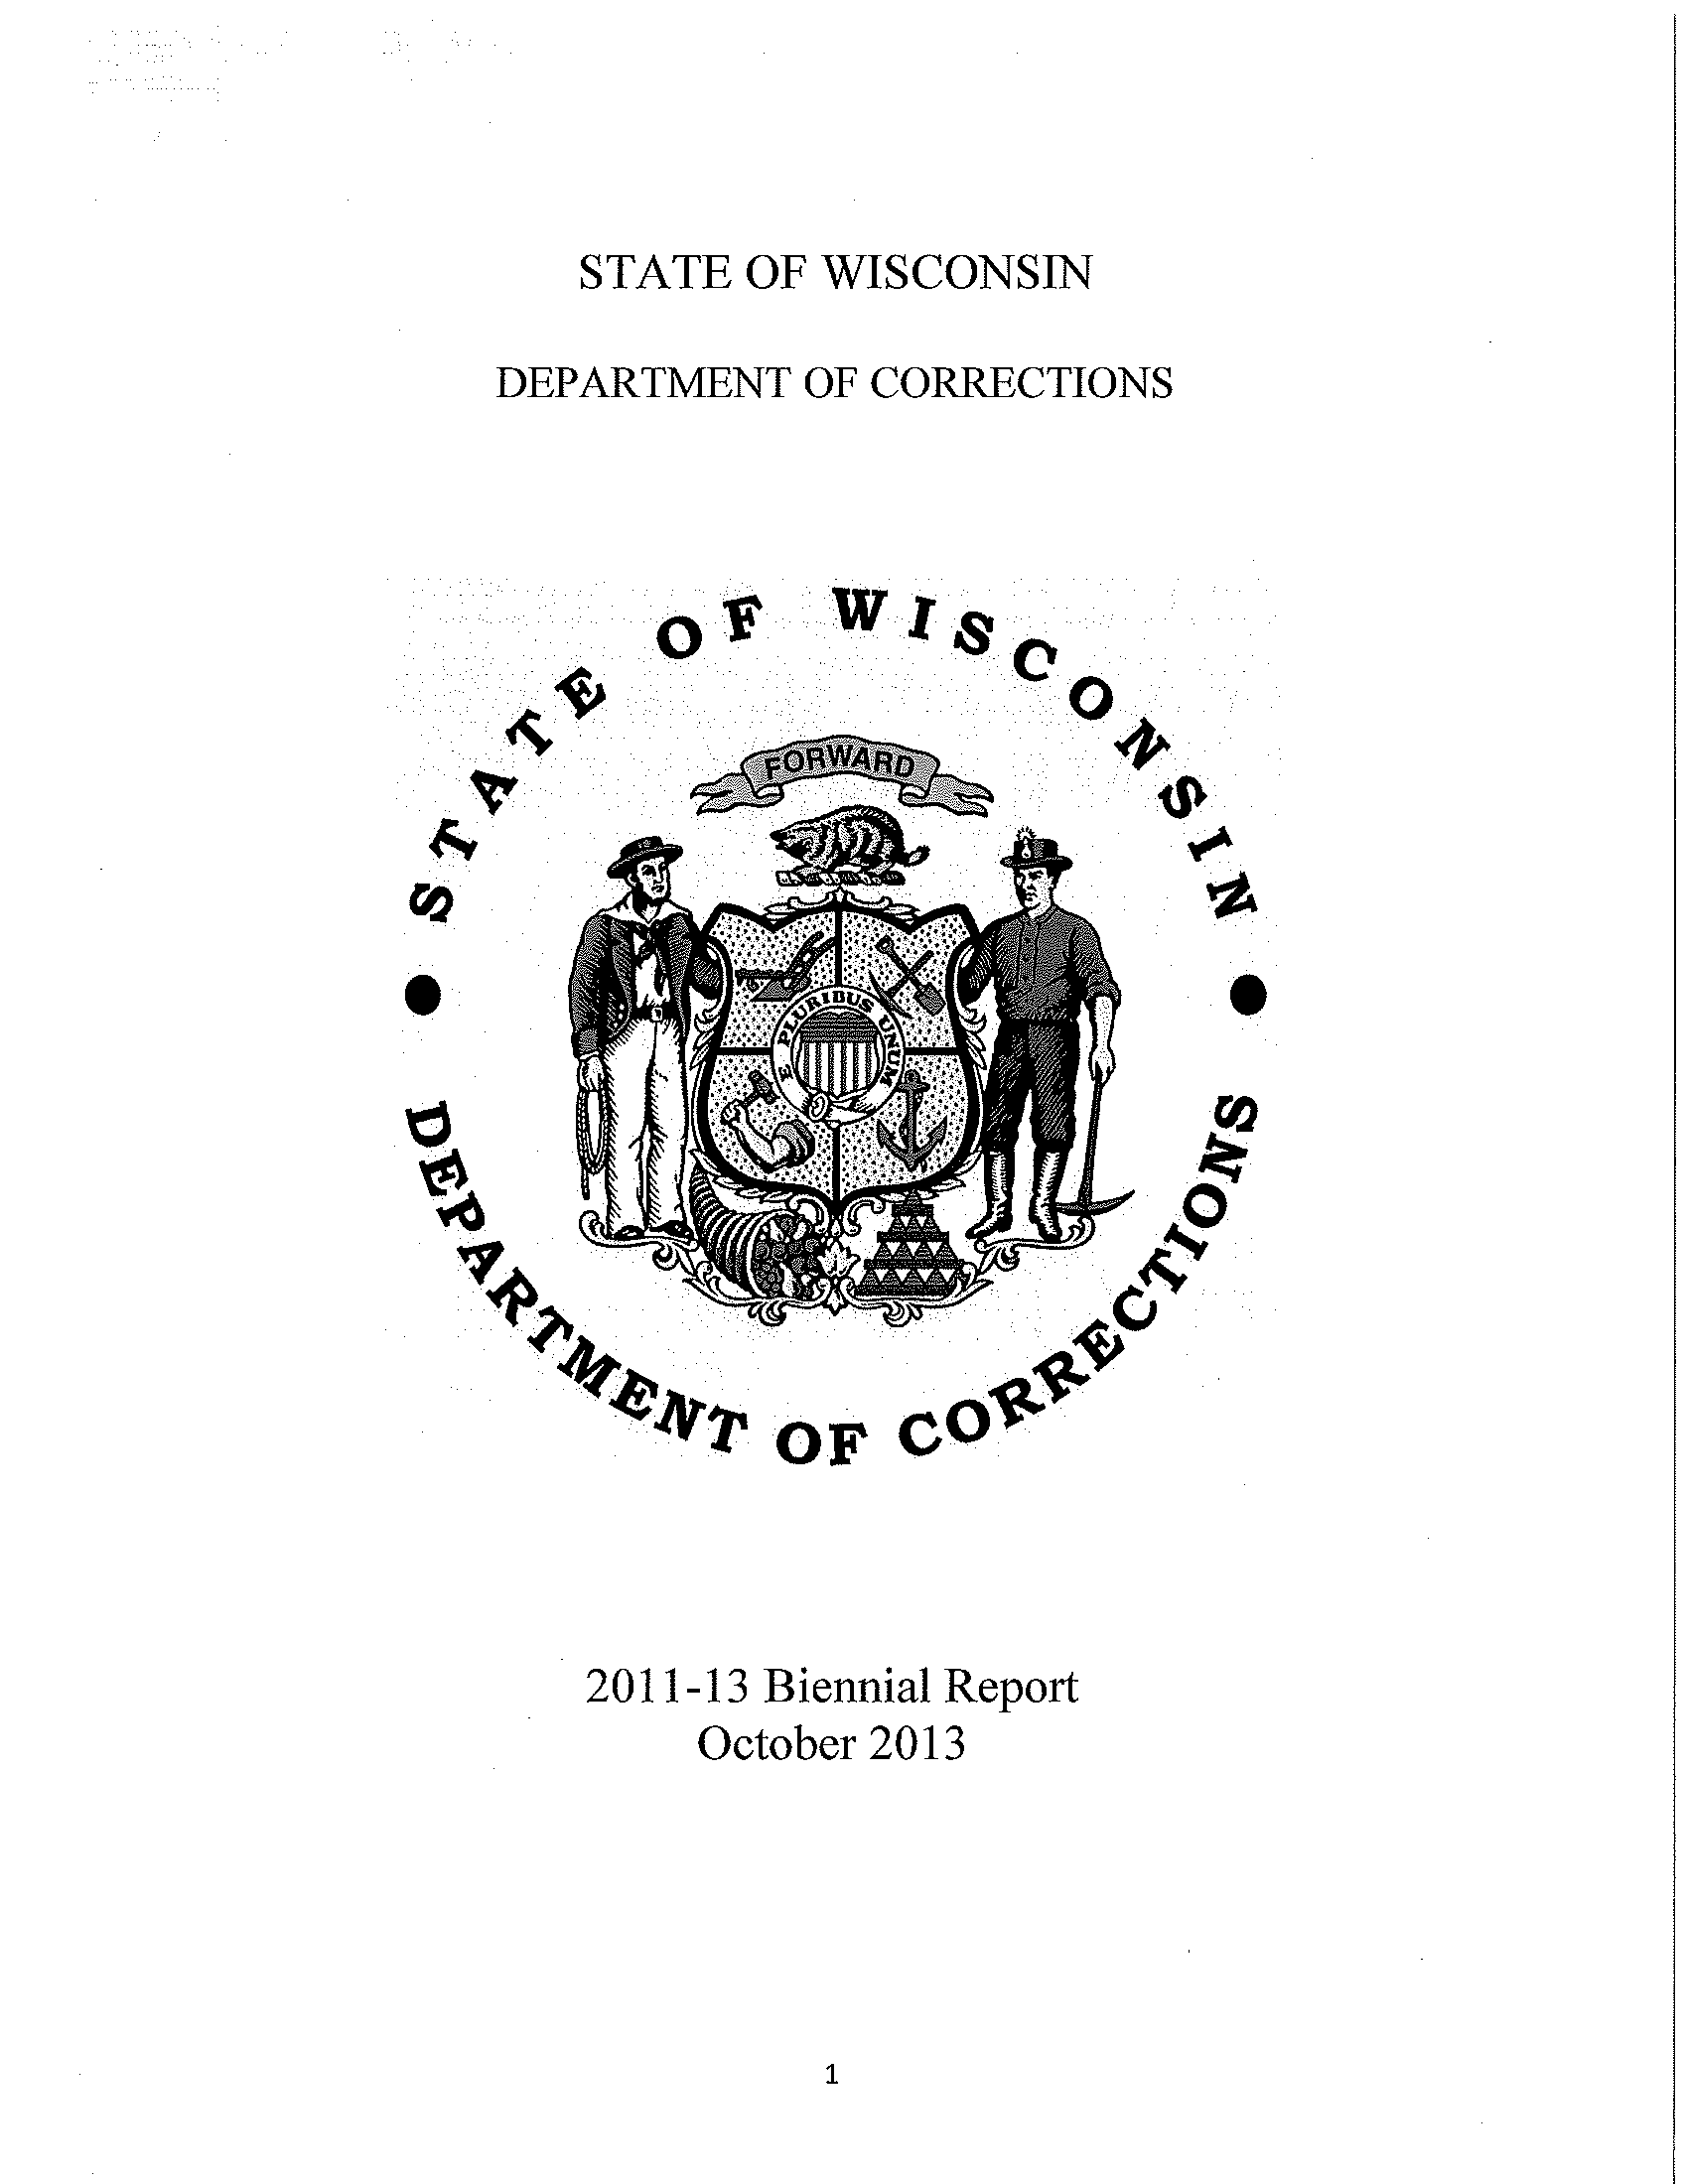 Biennial report / State of Wisconsin, Department of